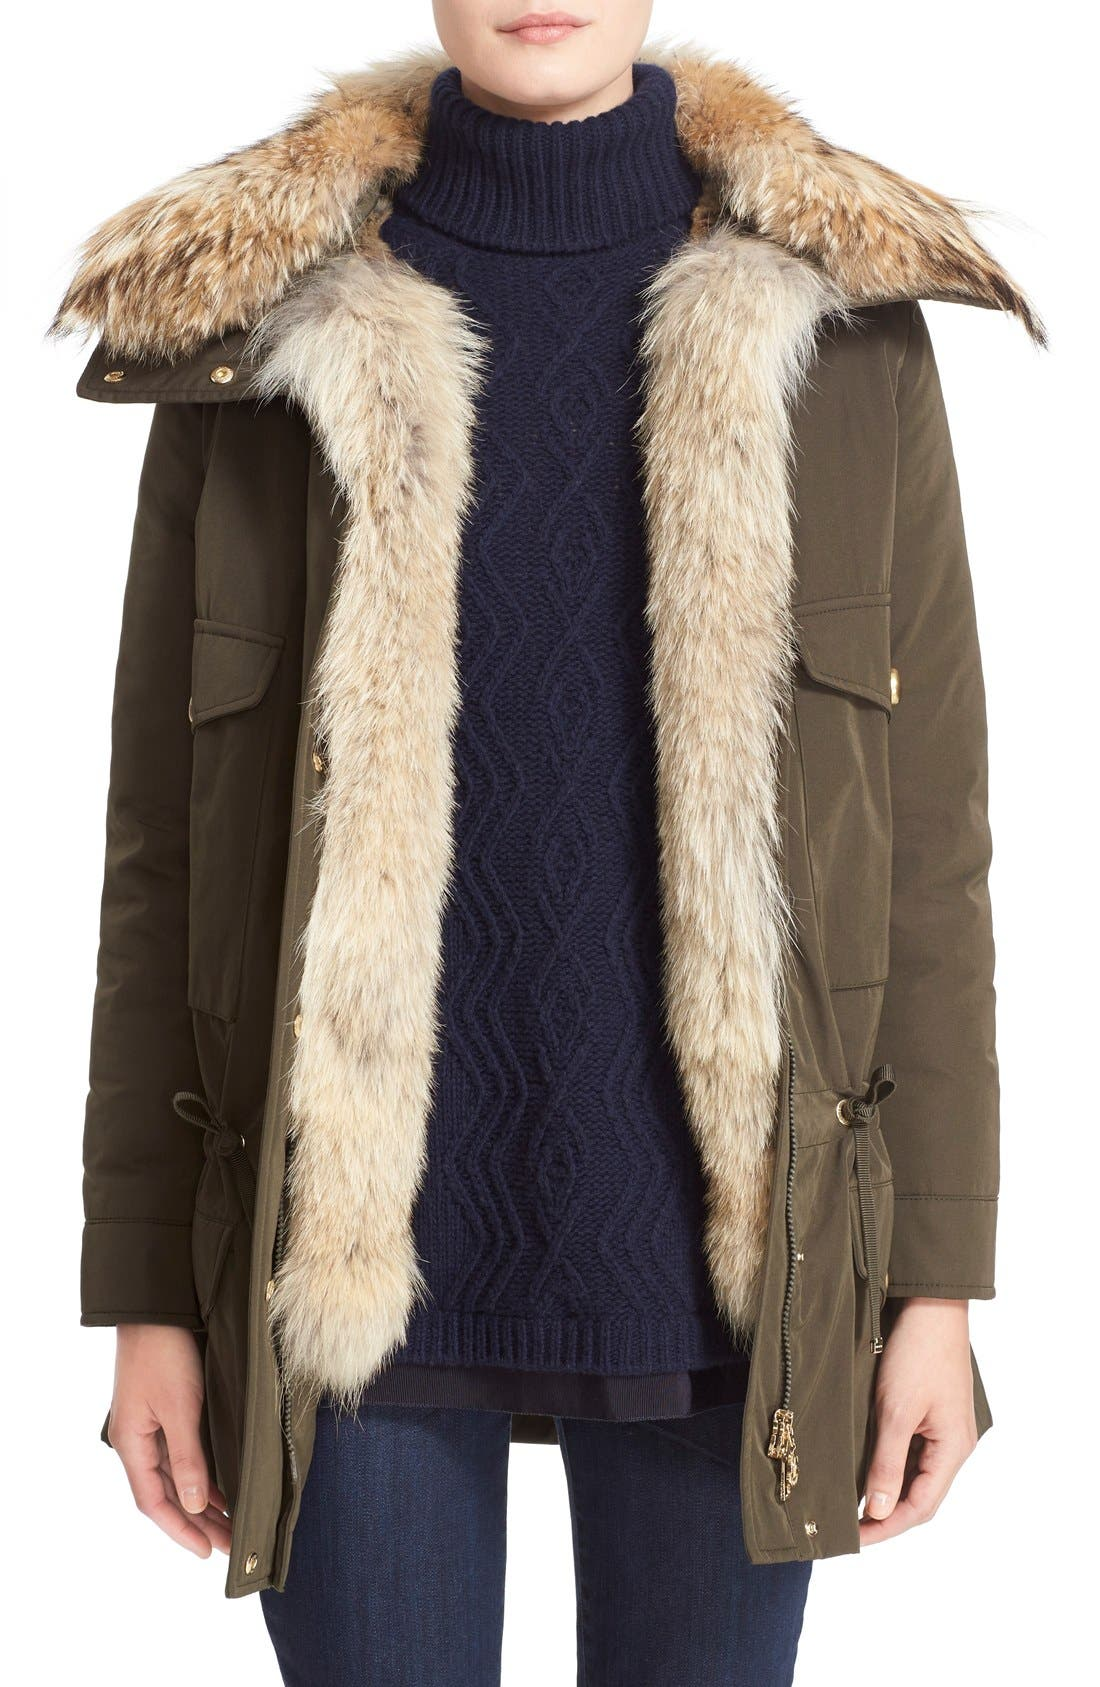 Moncler 'Margarita' Down Jacket with Removable Genuine Coyote Collar and Rabbit Fur Vest